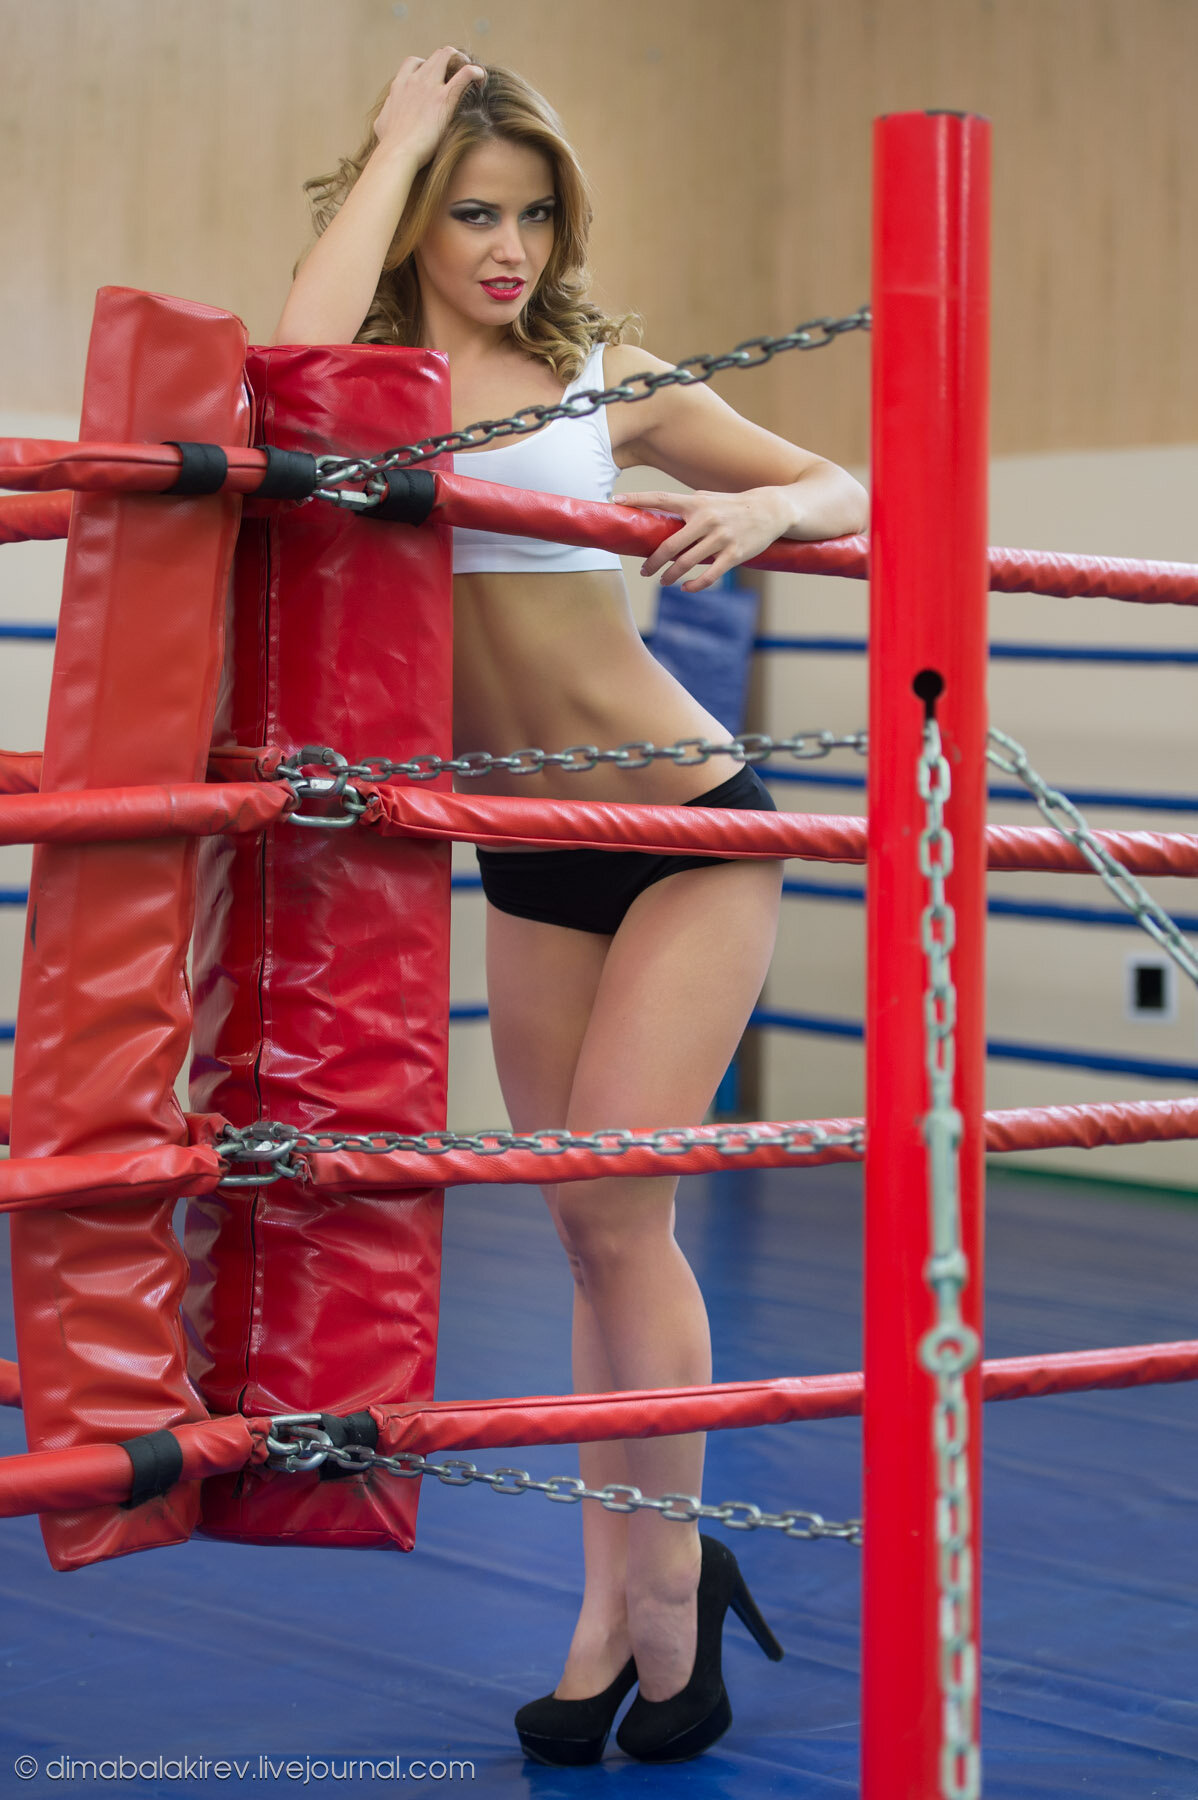 Ring girls top hottest boxing erotic pictures hd